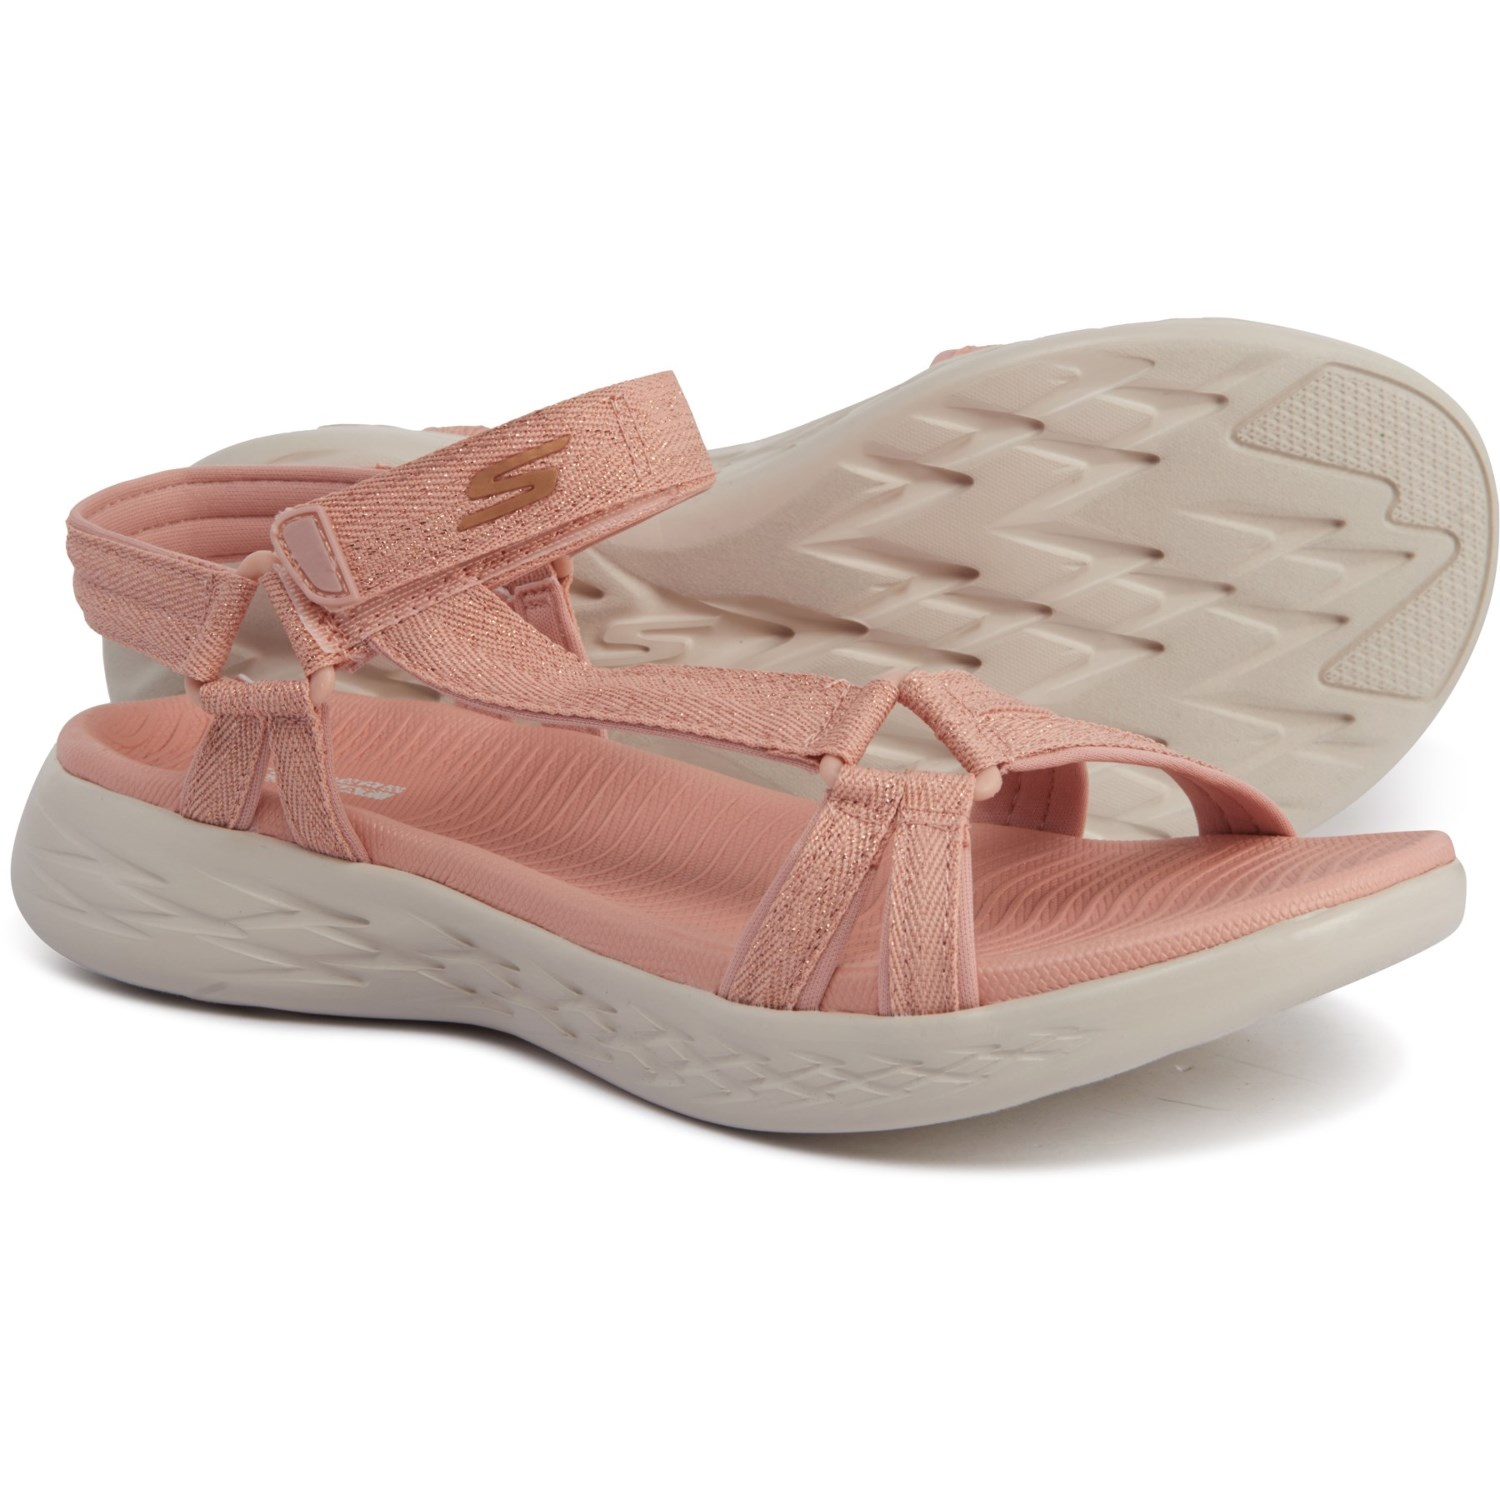 skechers river sandals Sale,up to 48